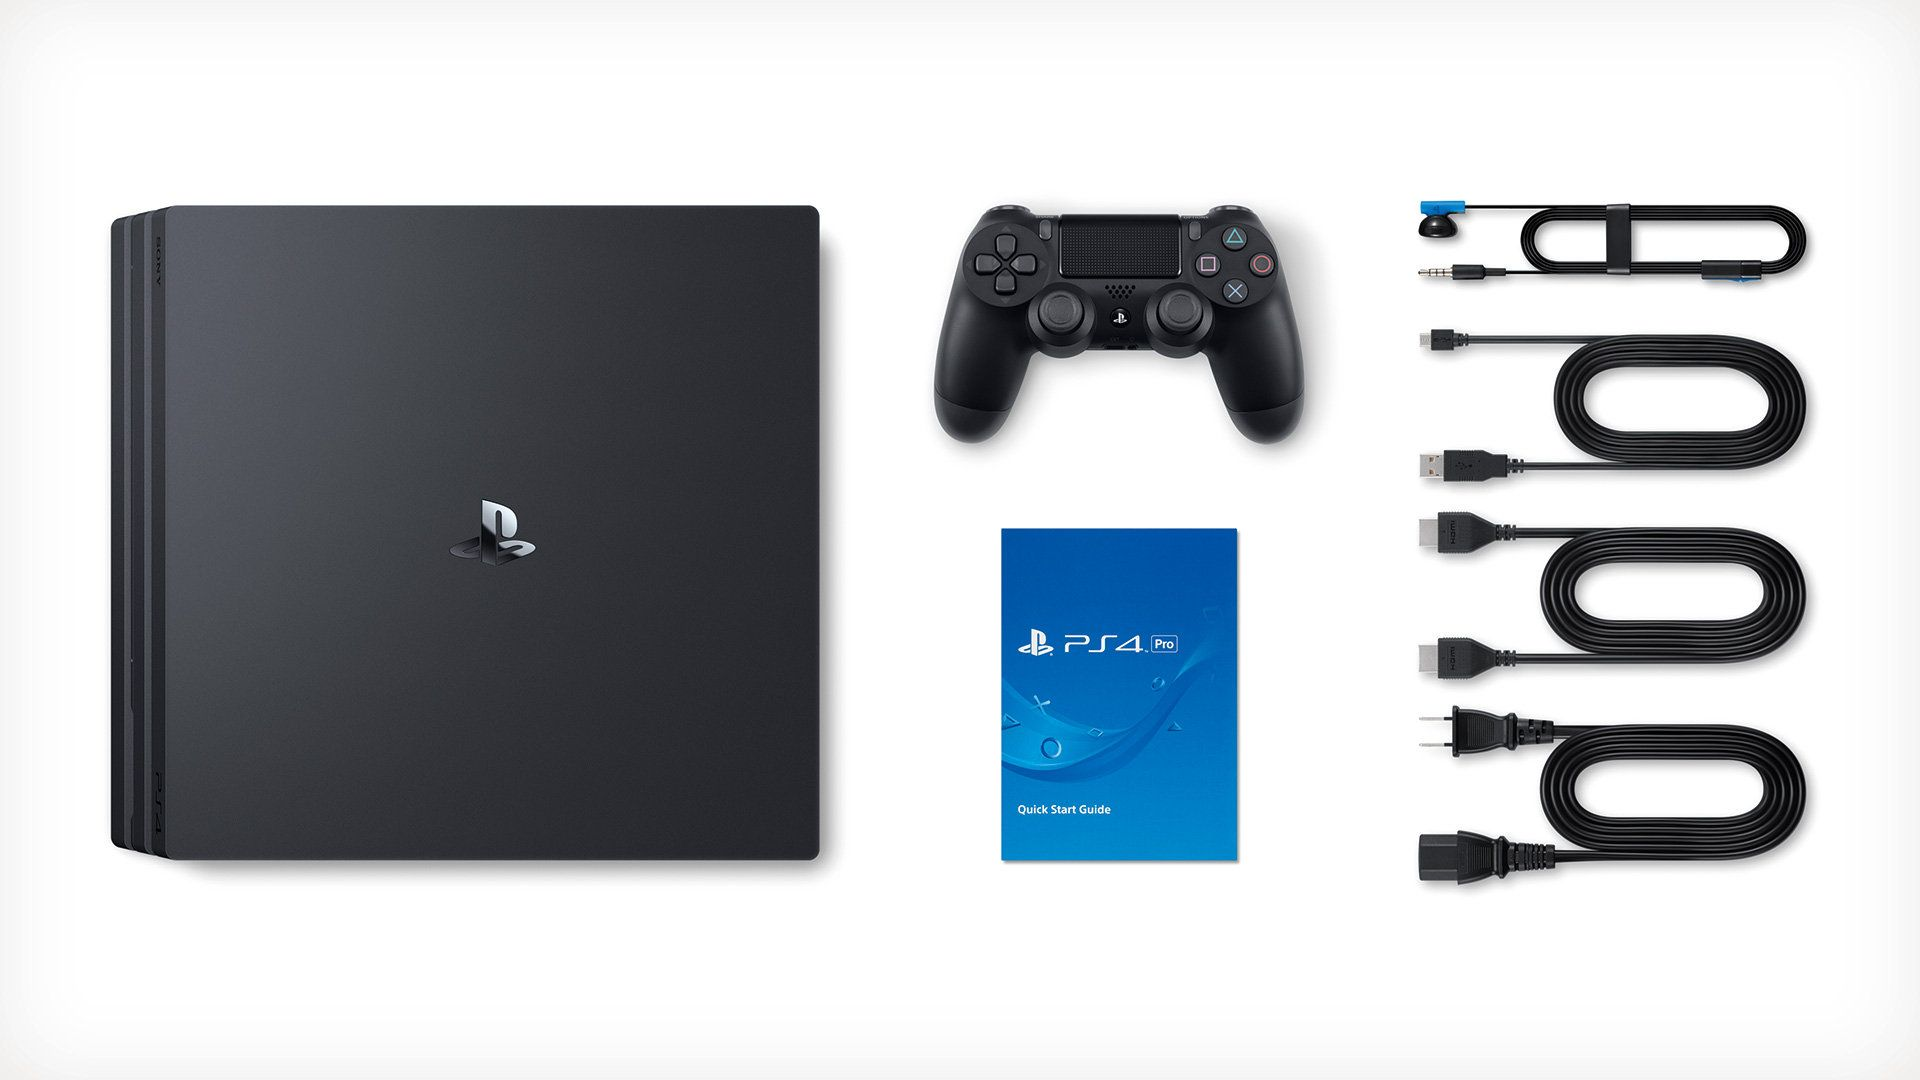 Console Playstation 4 Pro 4K - 1 Terabyte (2 Controles)